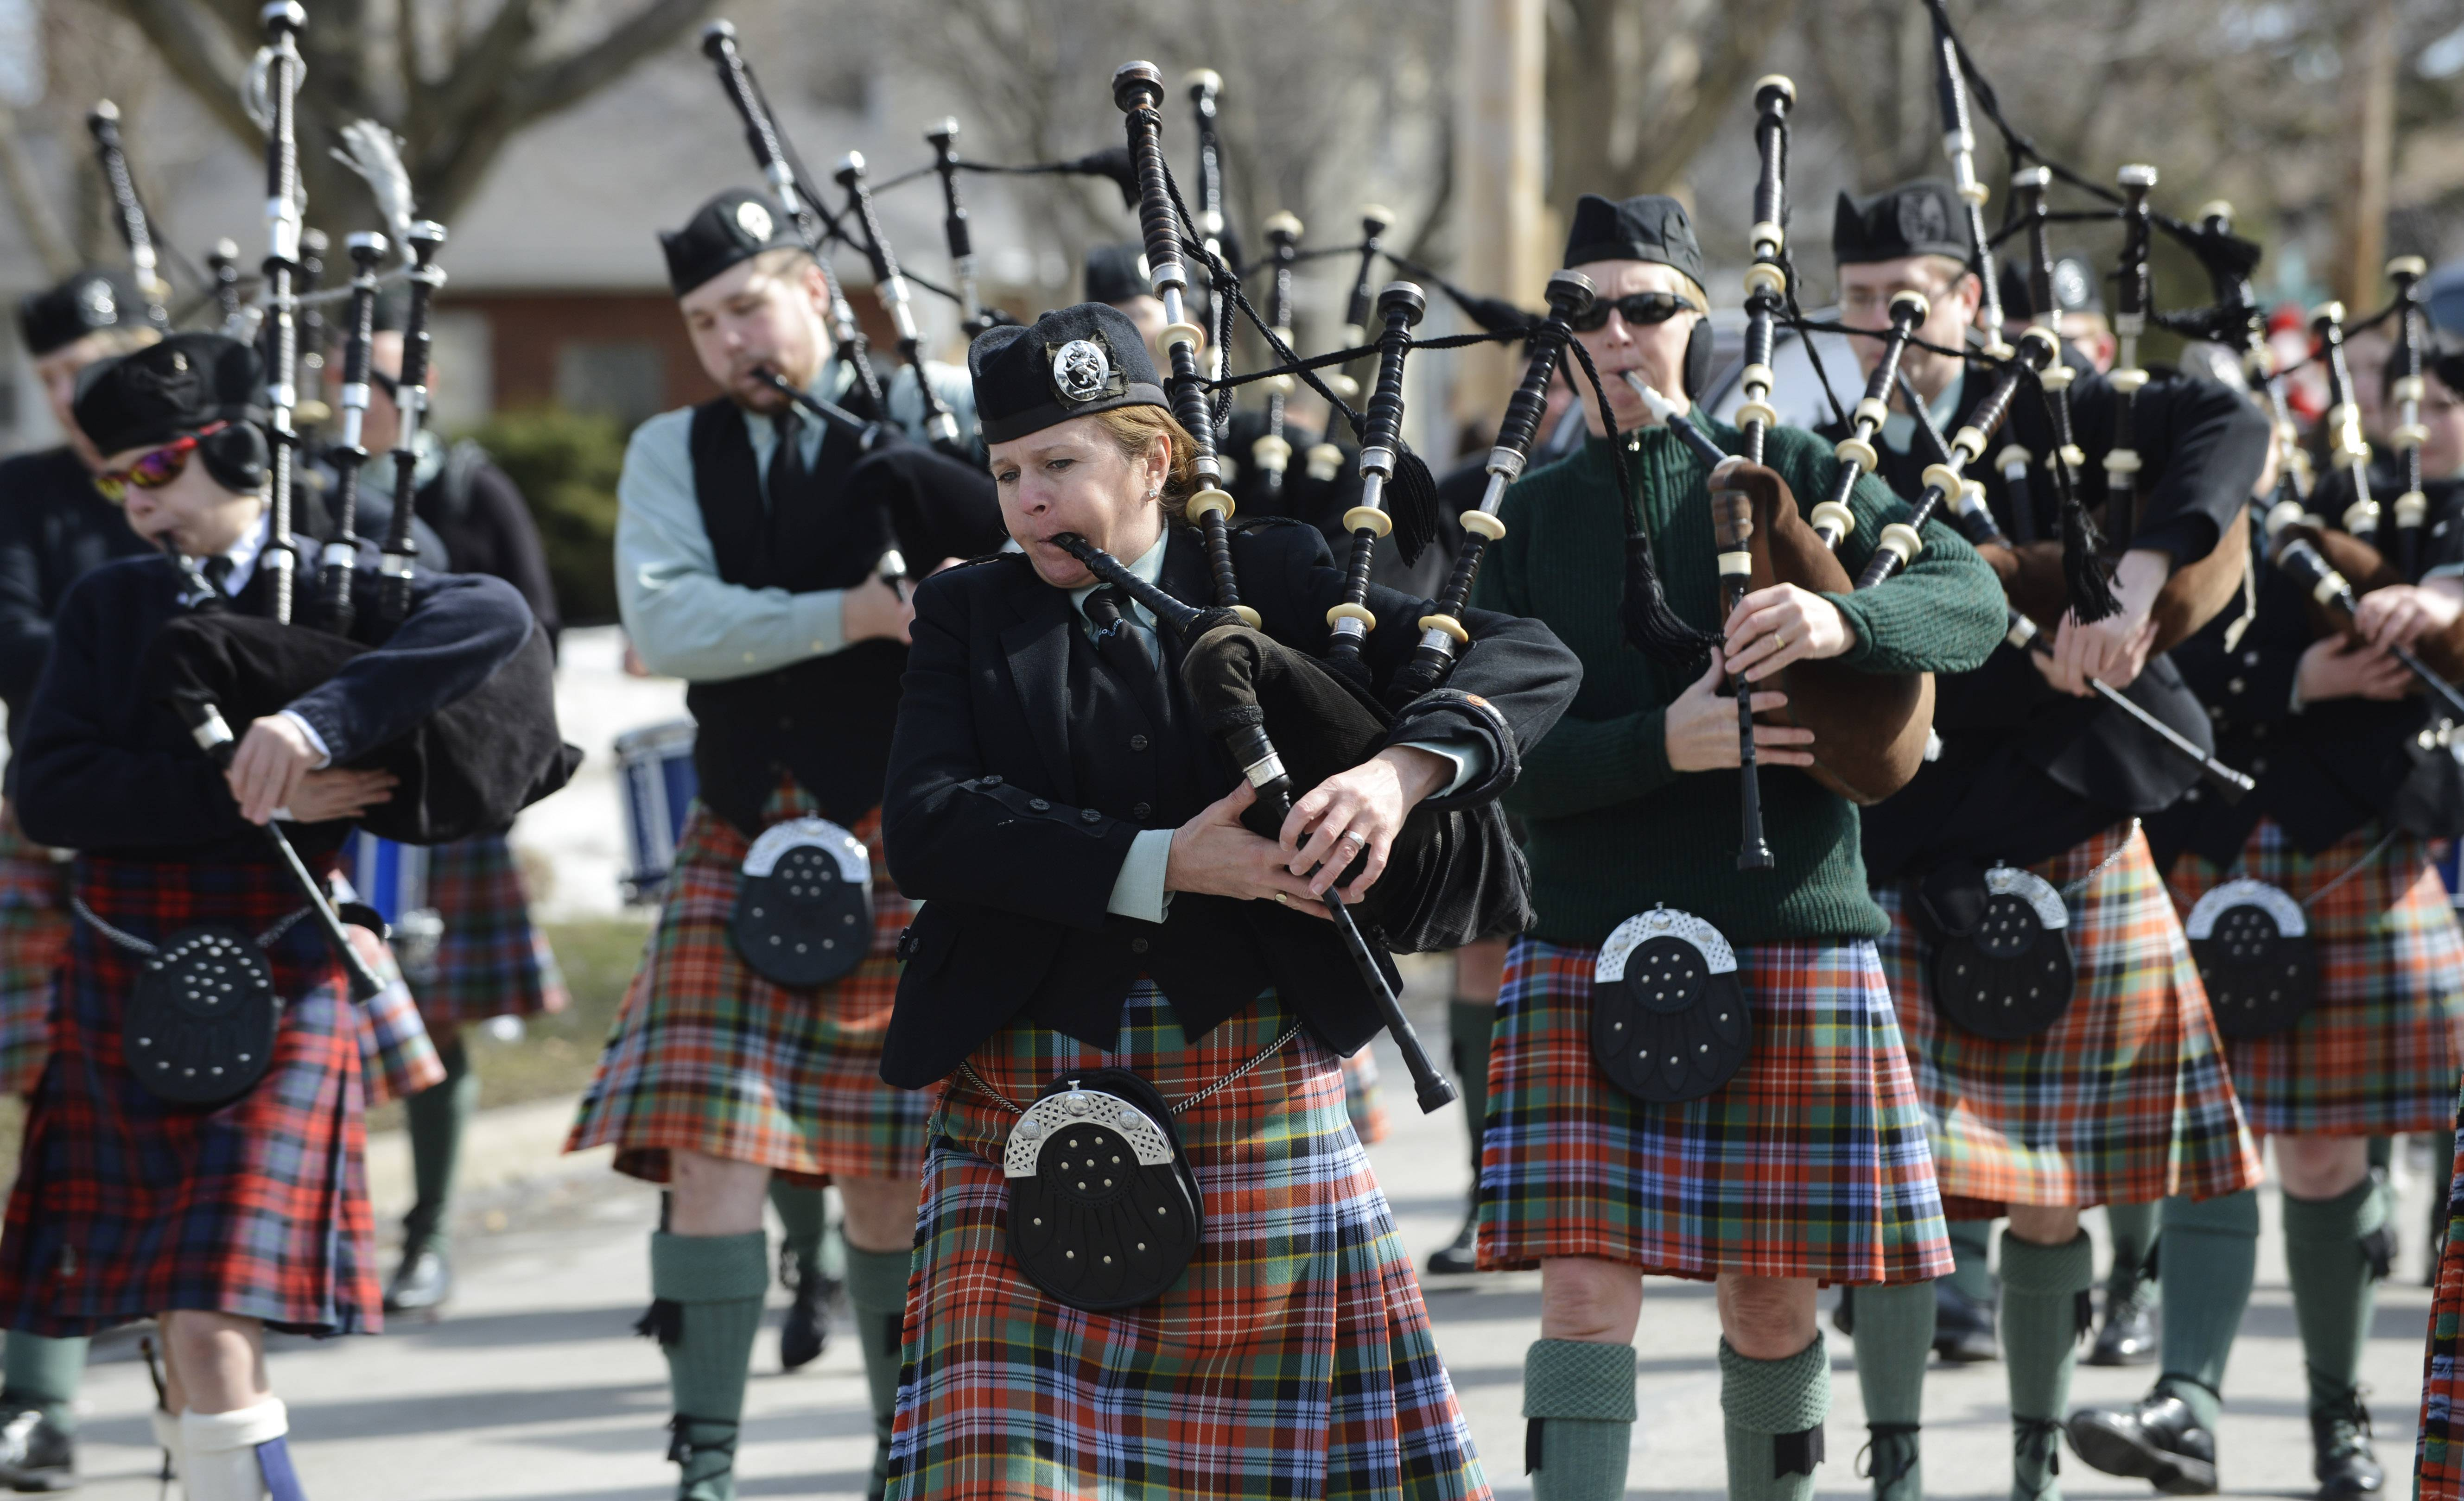 The Midlothian Scottish Pipe Band is scheduled to return to the Palatine Paint the Town Green parade, which kicks off at 11 a.m. Saturday in the village's downtown as part of a daylong festival celebrating Irish heritage.